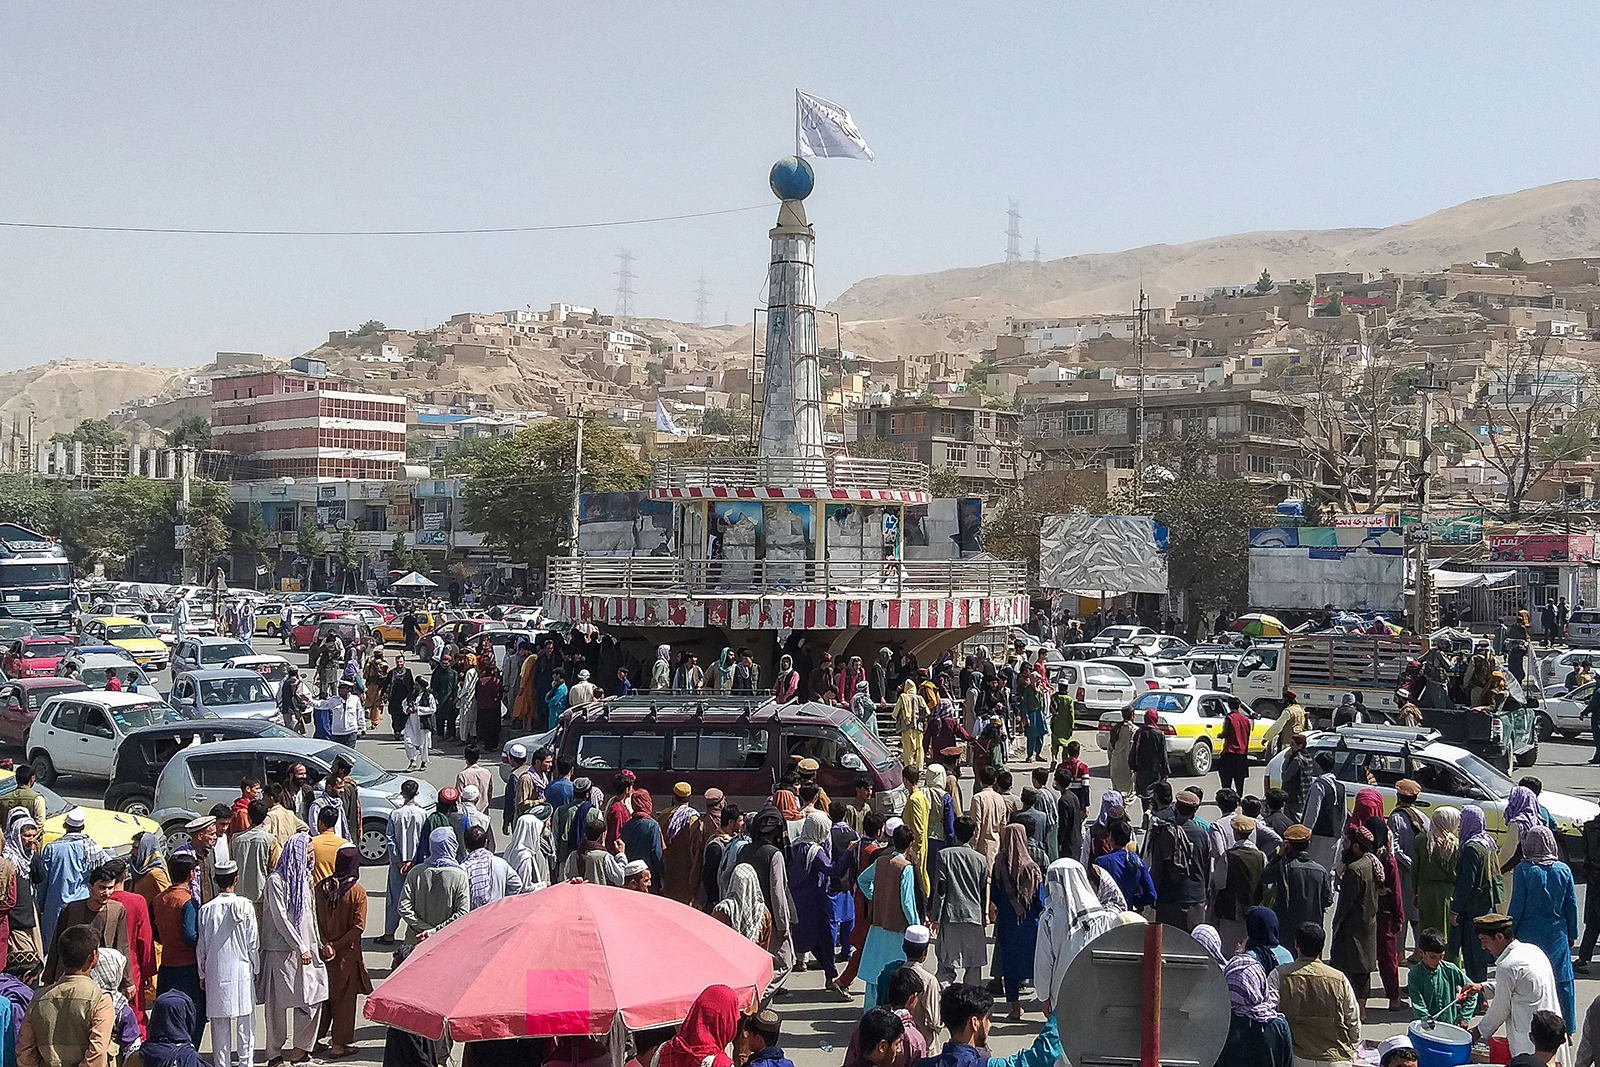 A Taliban flag is seen on a plinth with people gathered around the main city square at Pul-e-Khumri on August 11.